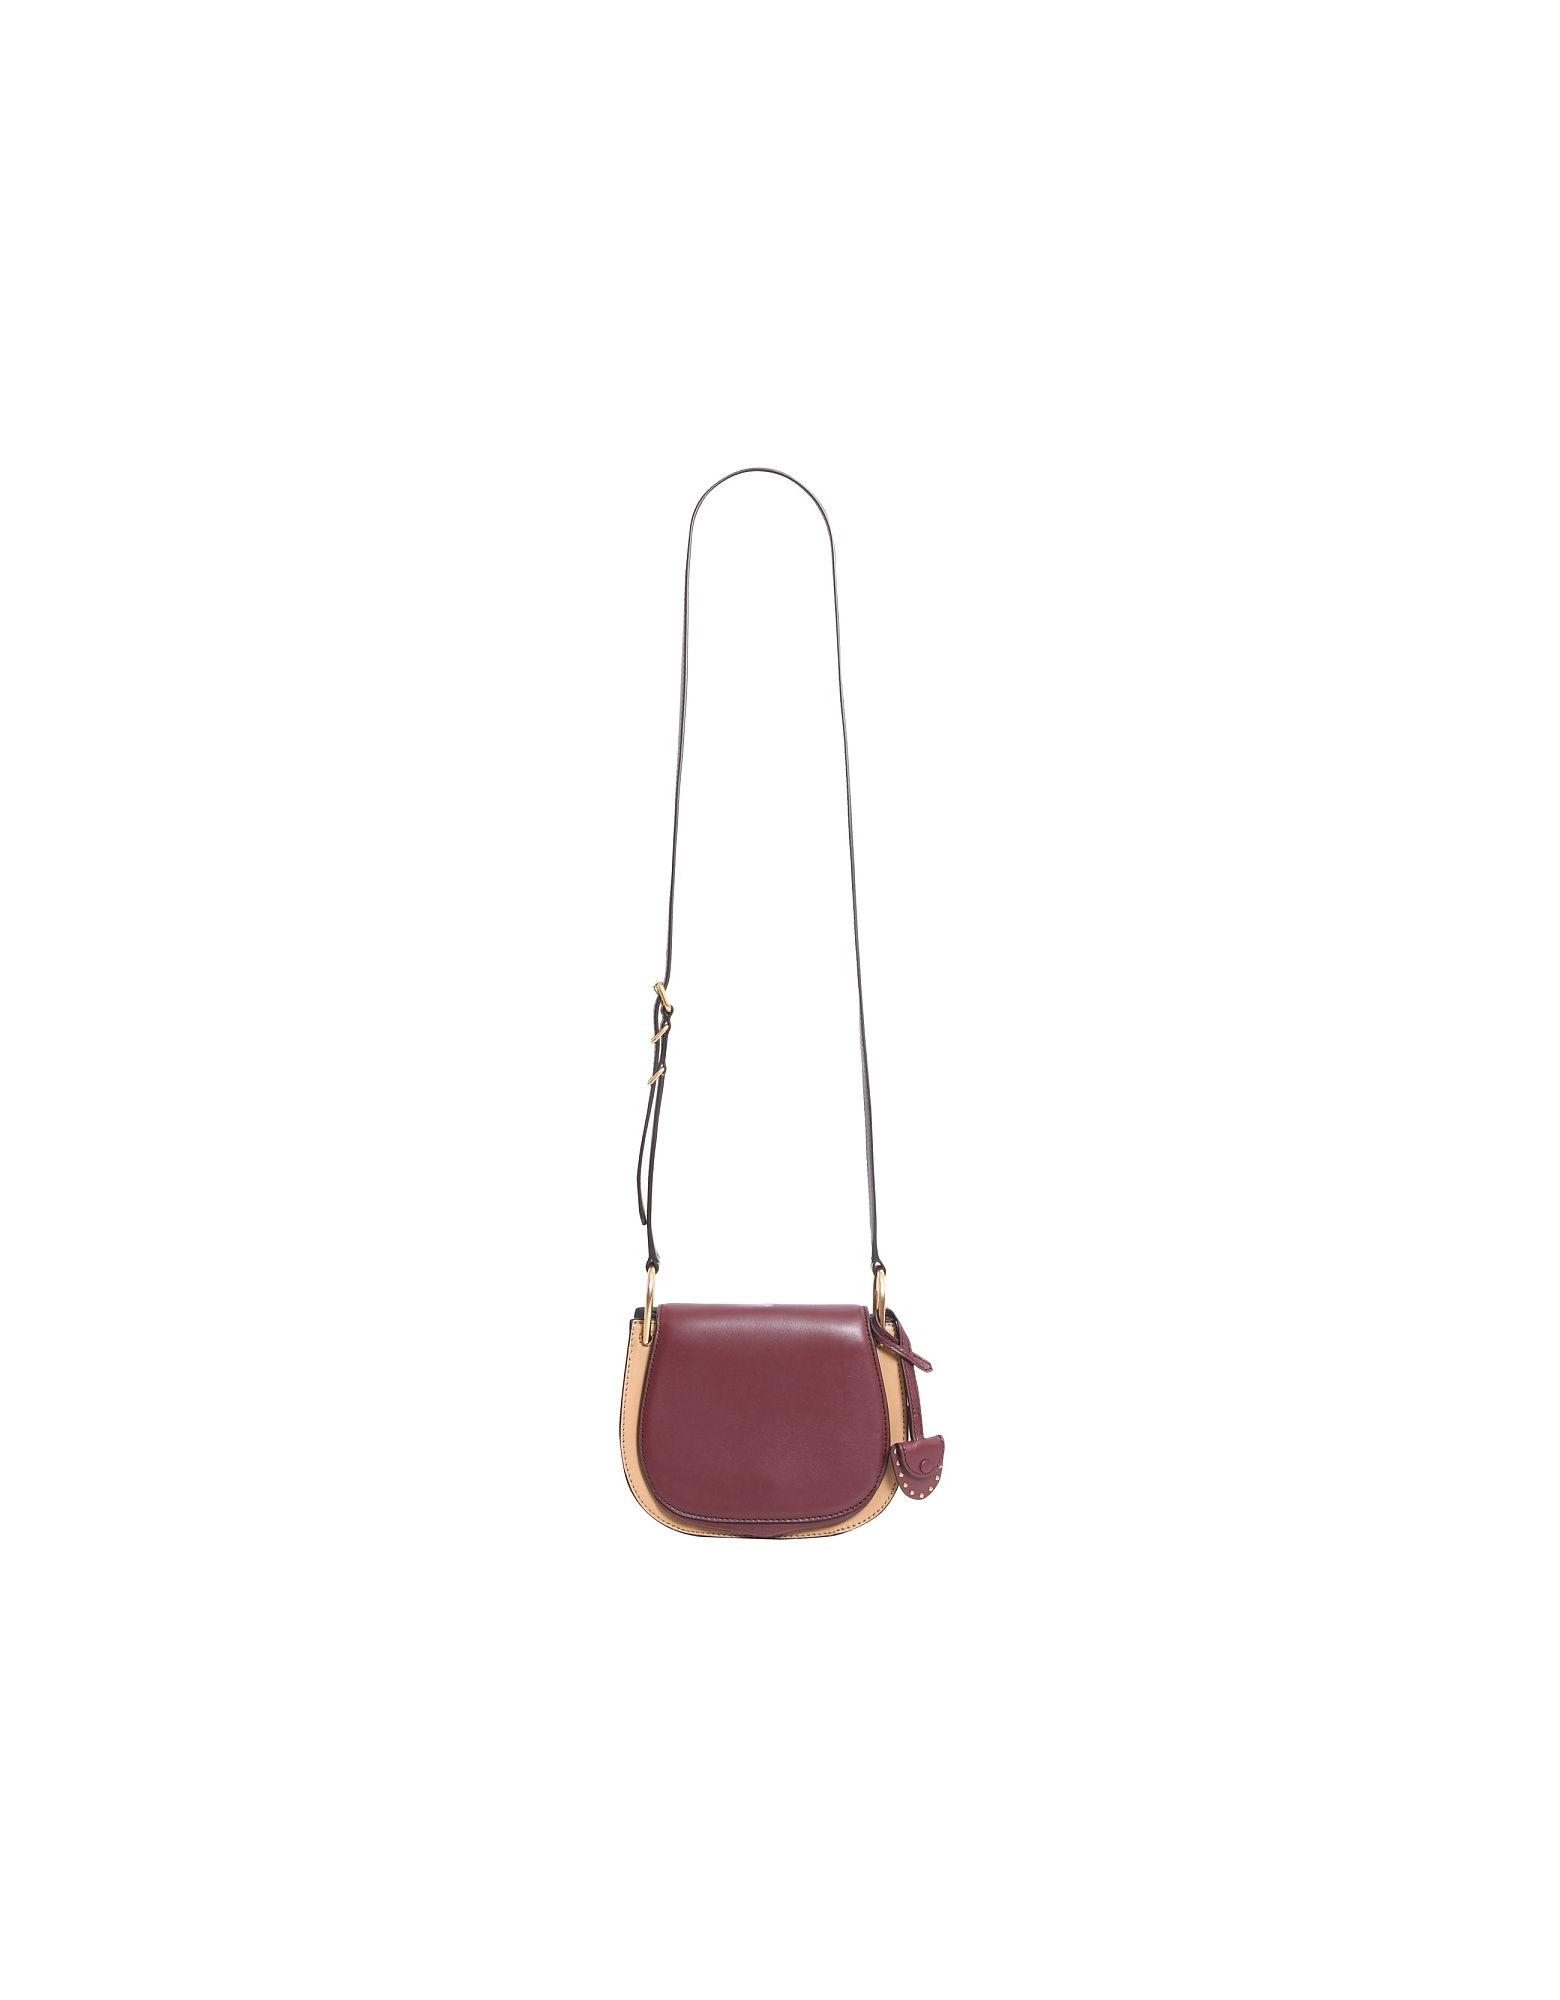 Rebecca Minkoff Designer Handbags, Small Saddle Crossbody Bag